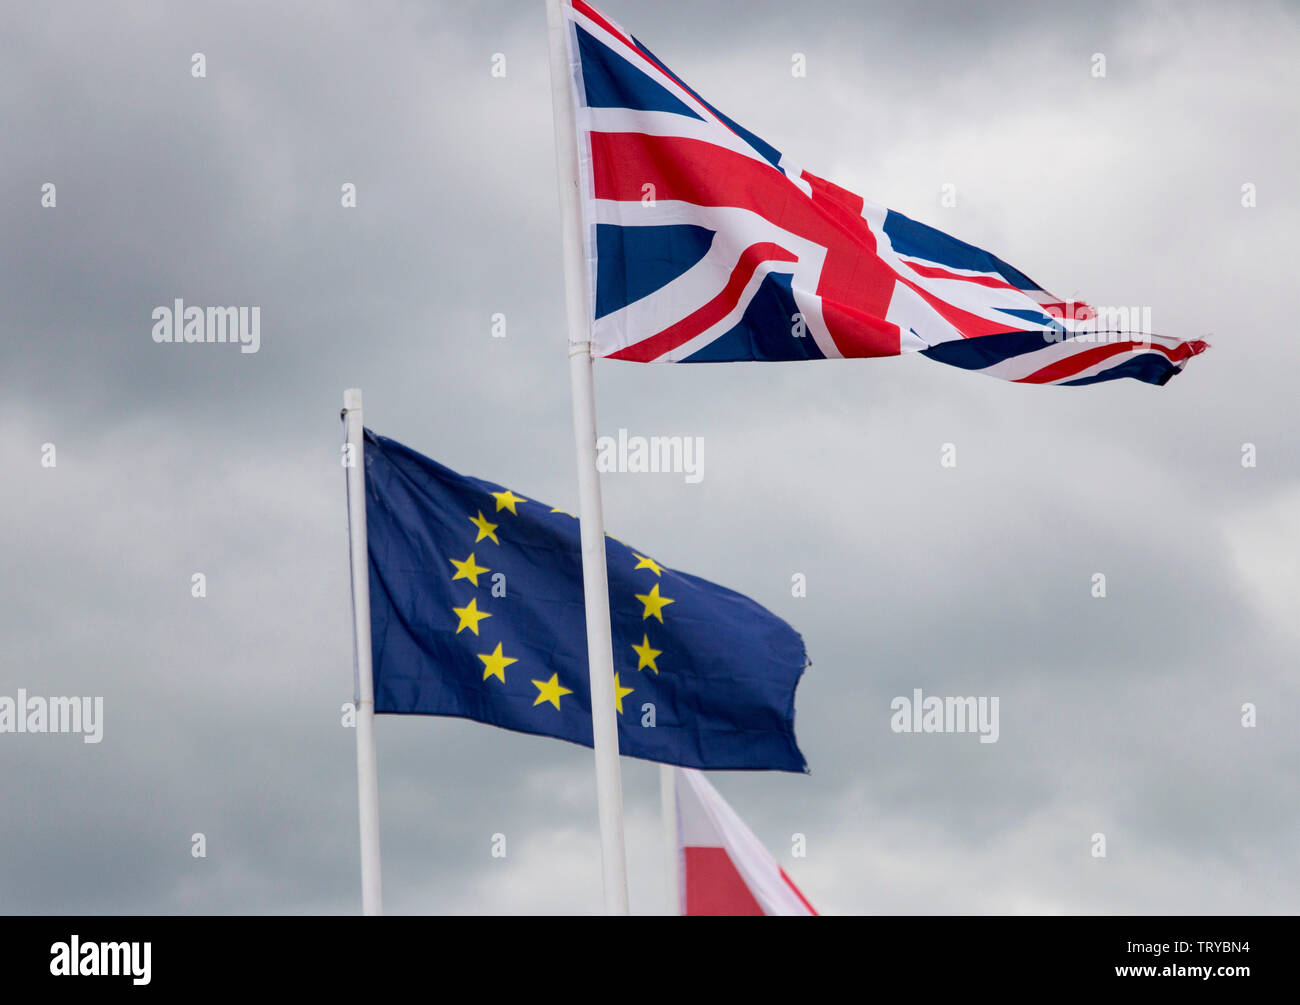 Union Jack and EU flags flying on masts - Stock Image